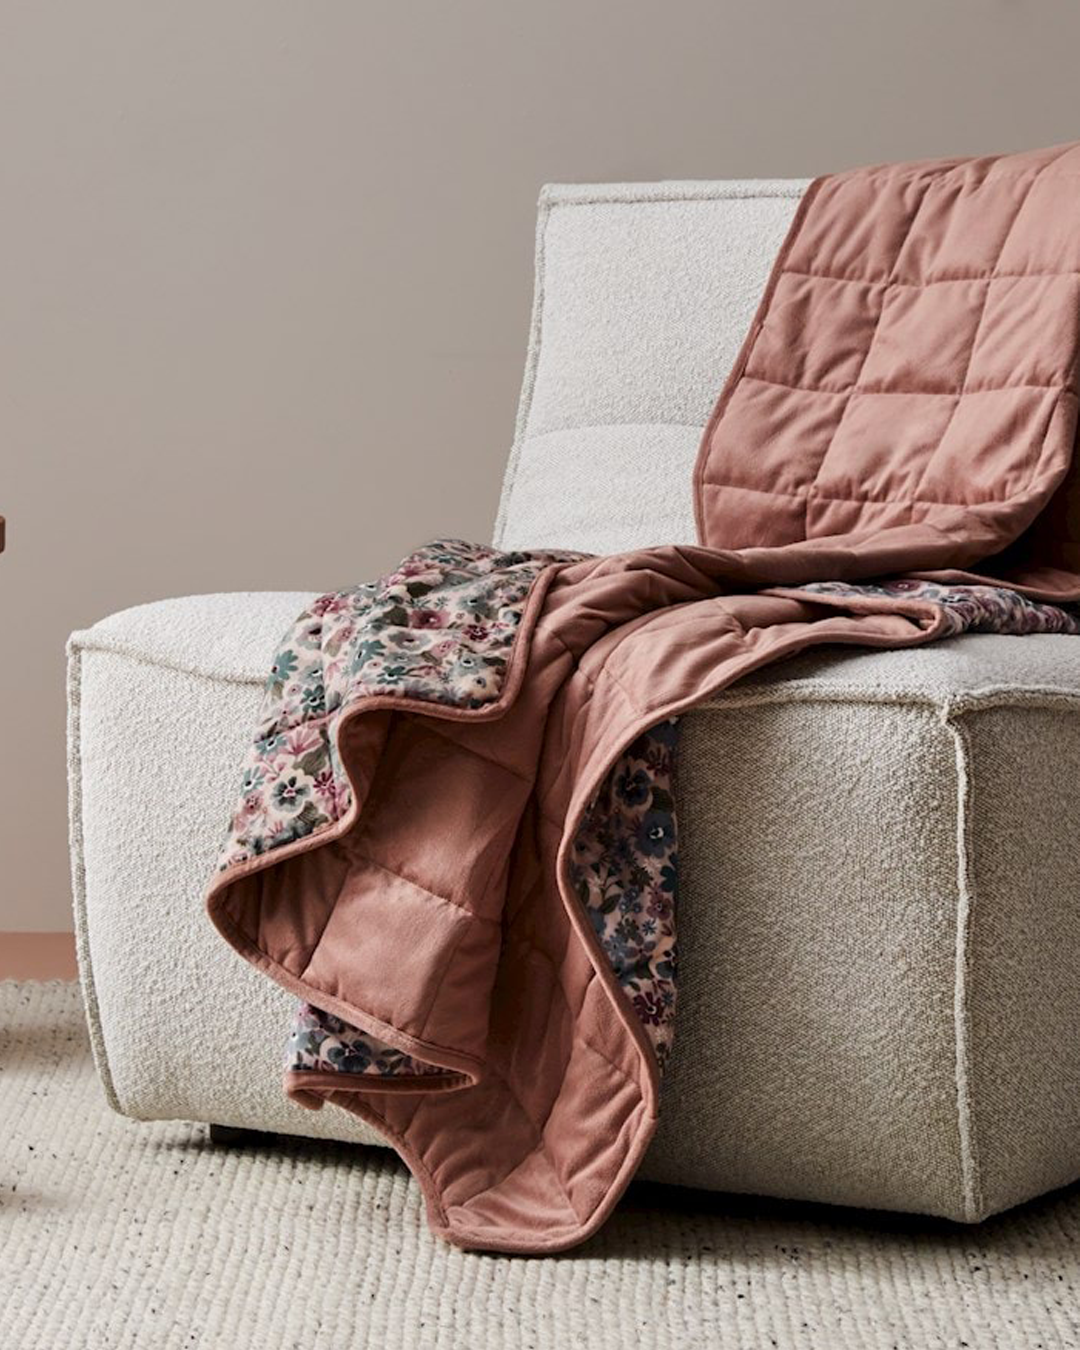 A pink and floral blanket draped over a sofa.